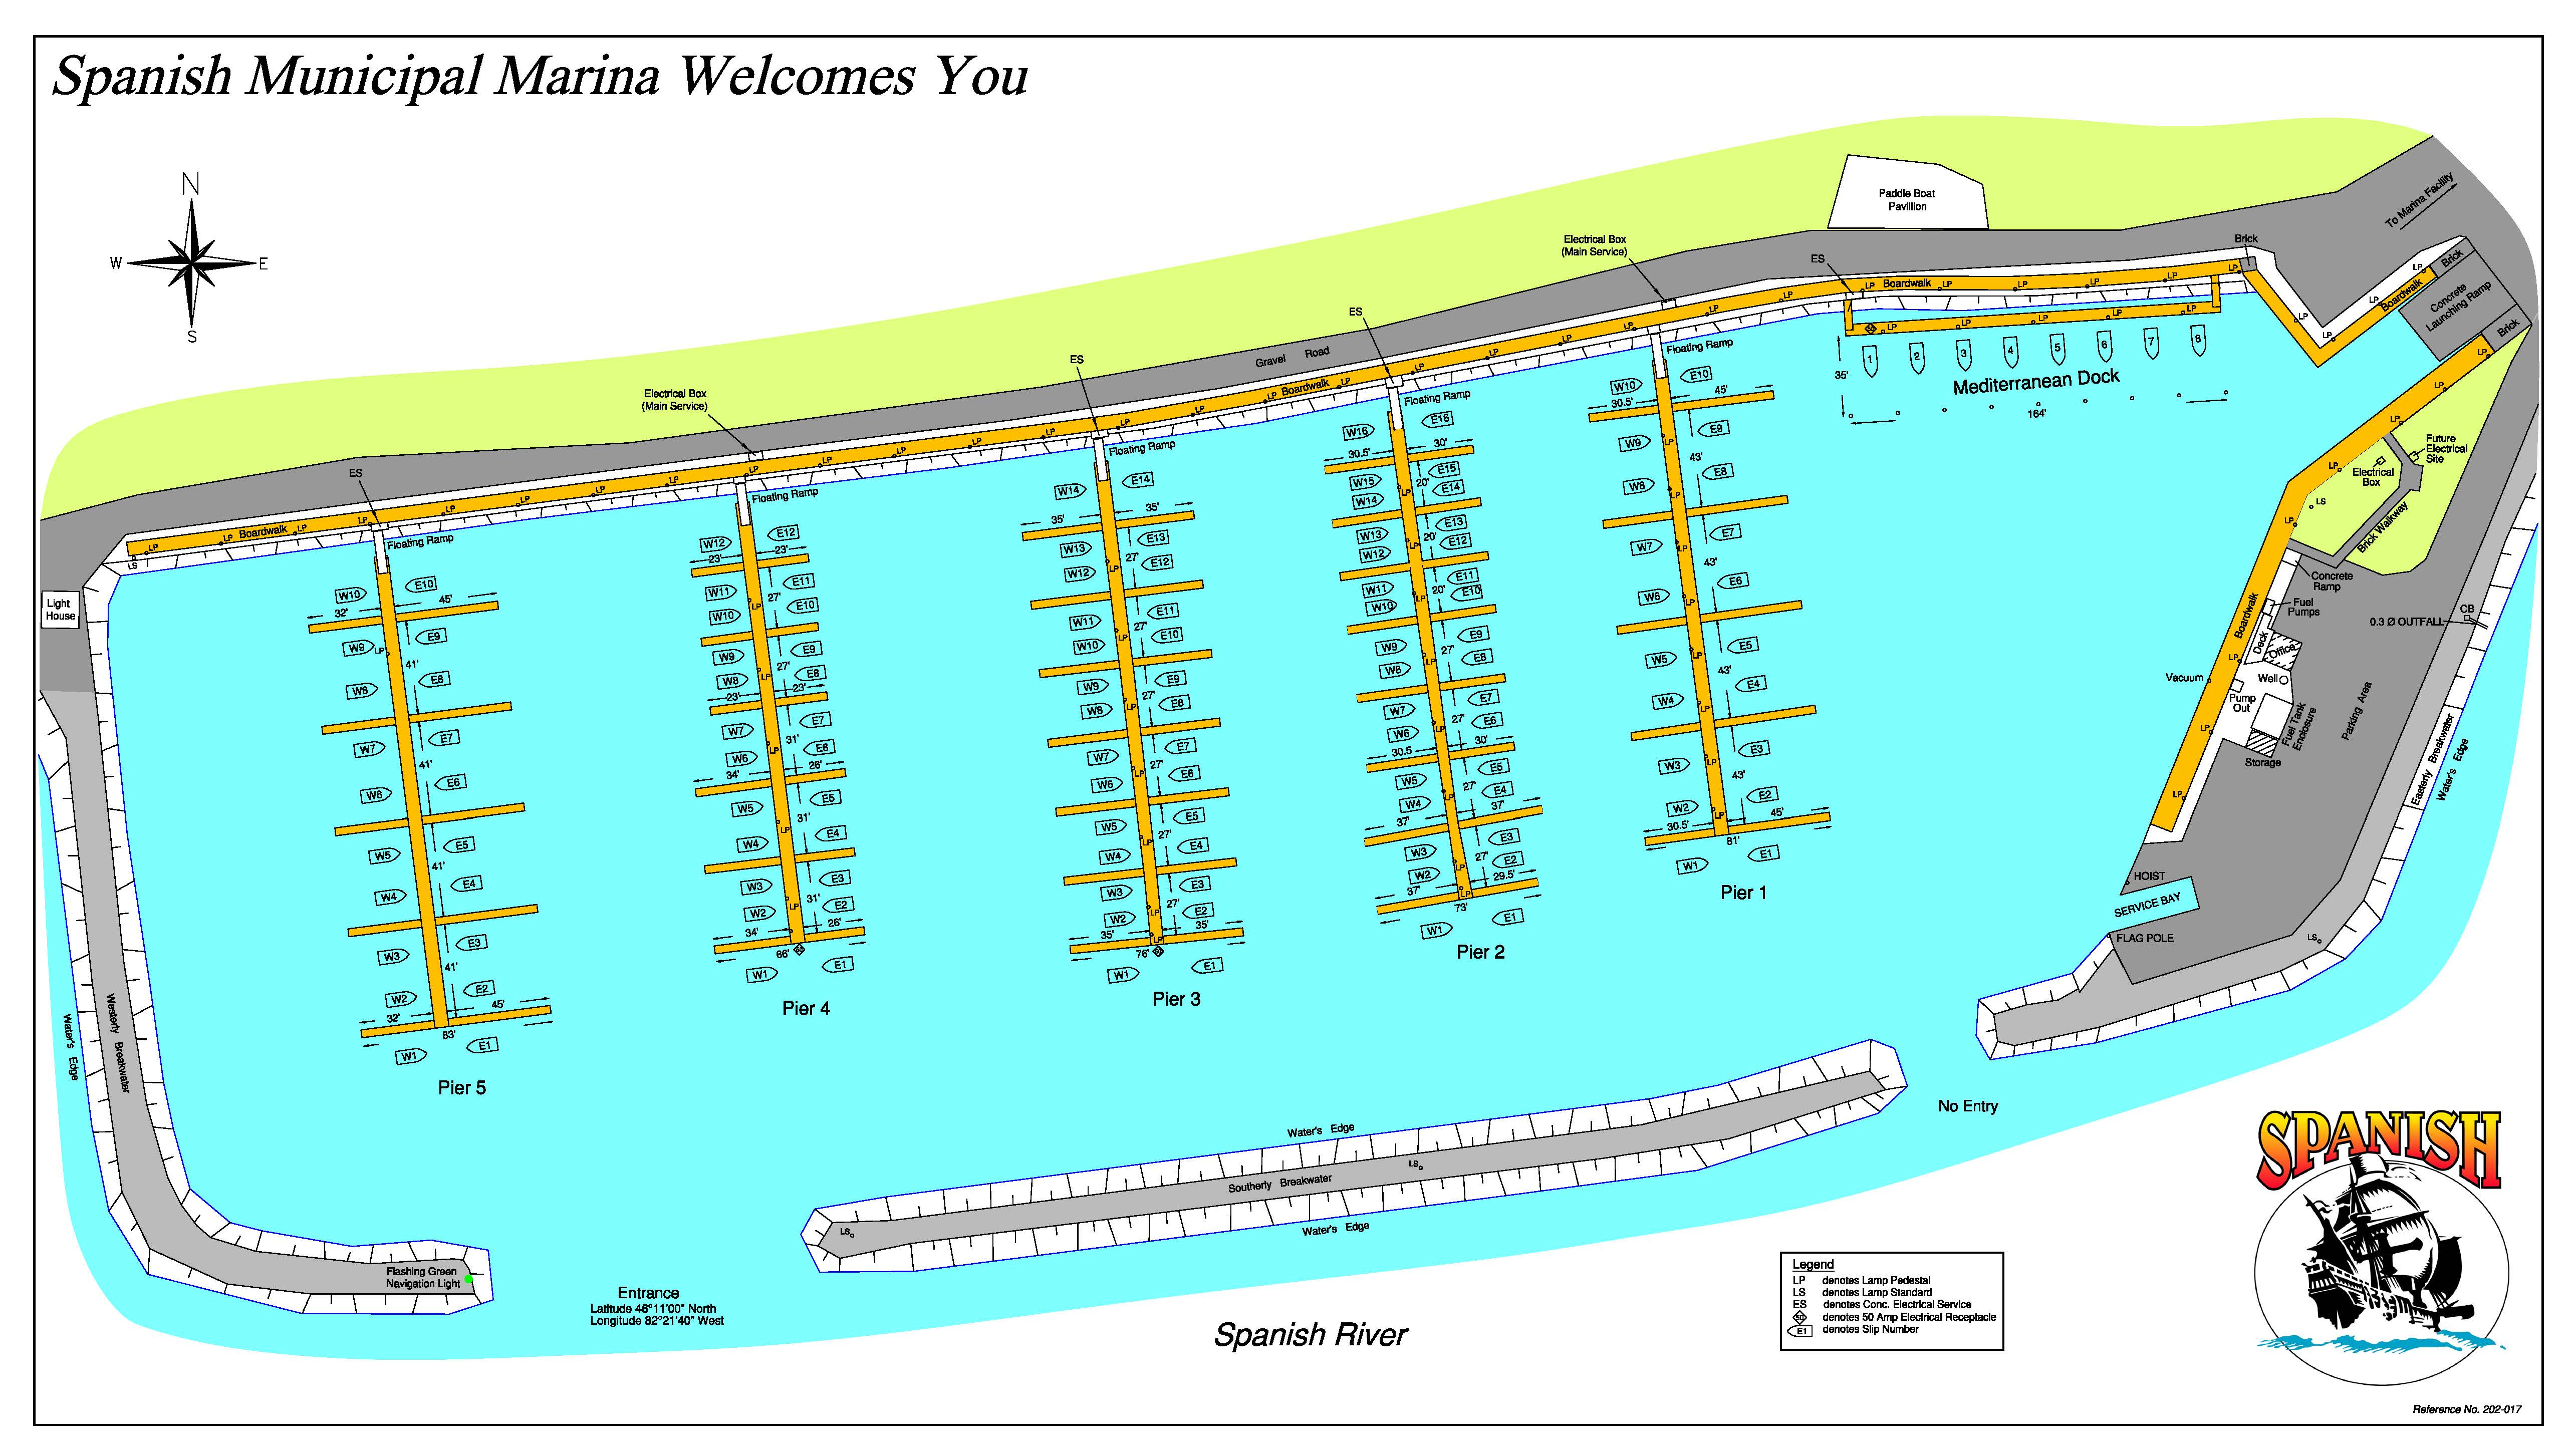 Layout of Docks